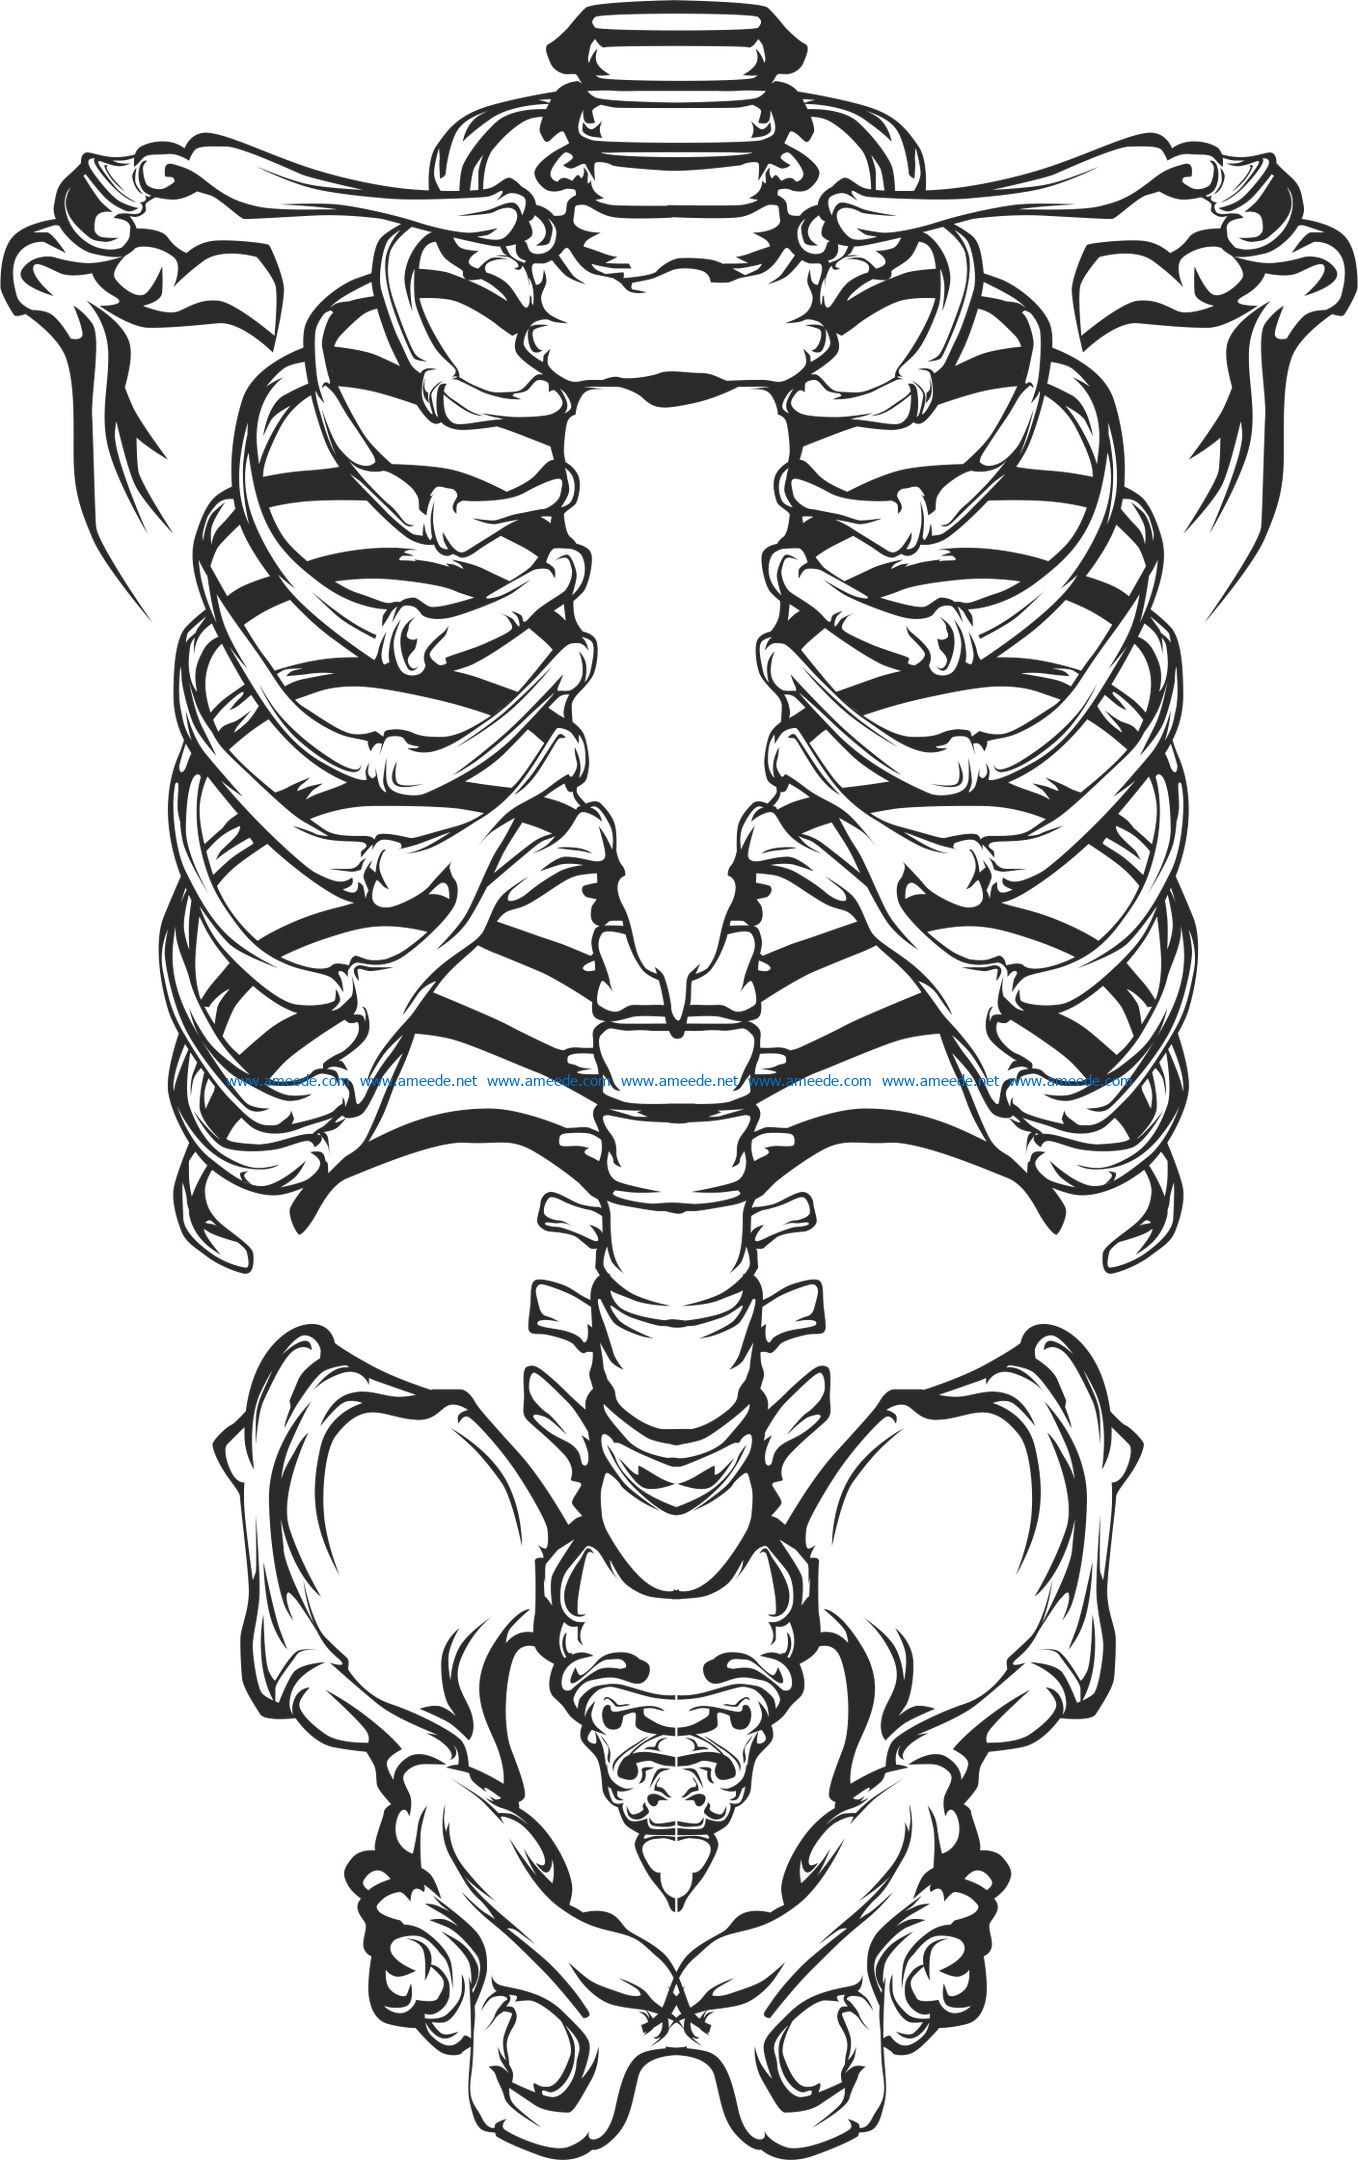 skeleton file cdr and dxf free vector download for print or laser engraving machines